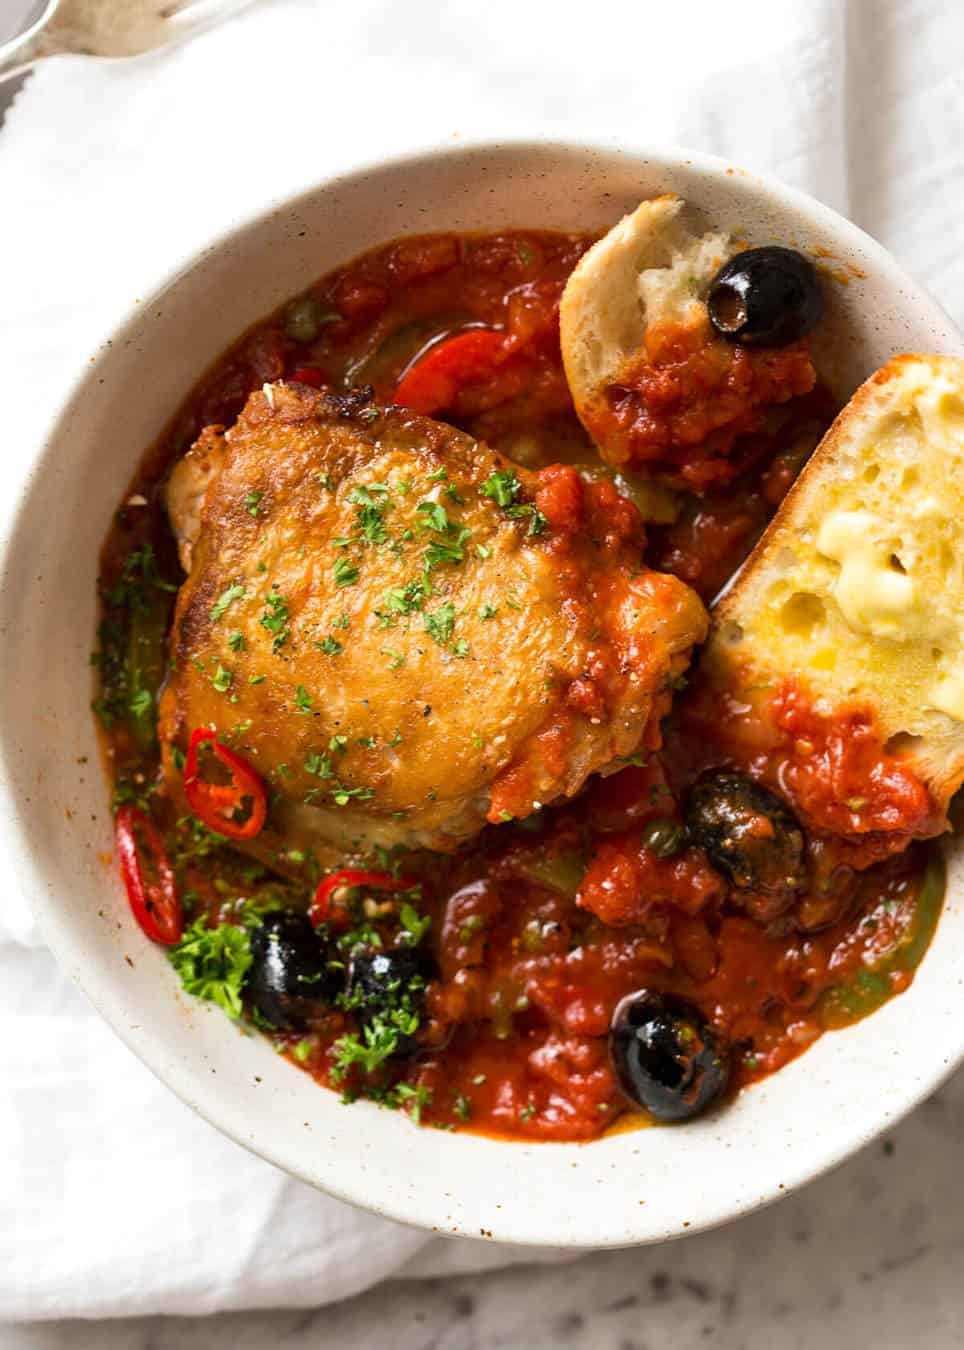 A hearty Italian Chicken Casserole with crispy chicken, capsicum / bell peppers, olives and capers. Sicilian style! www.recipetineats.com